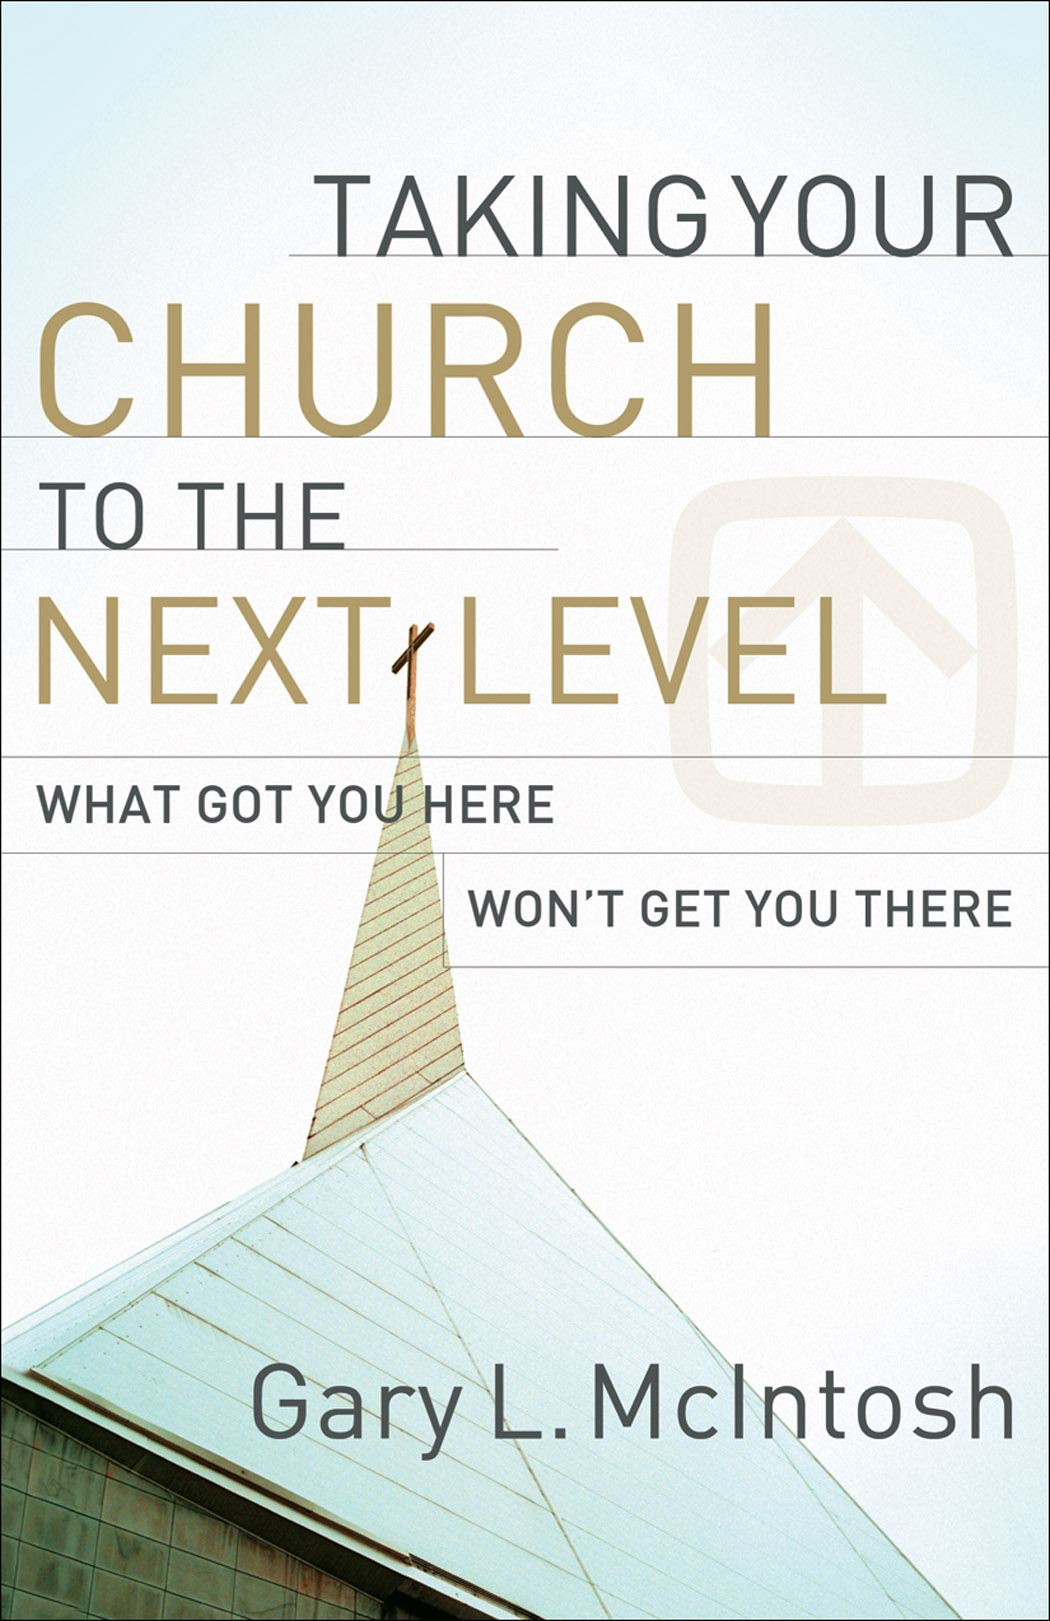 Taking Your Church to the Next Level By: Gary L. McIntosh